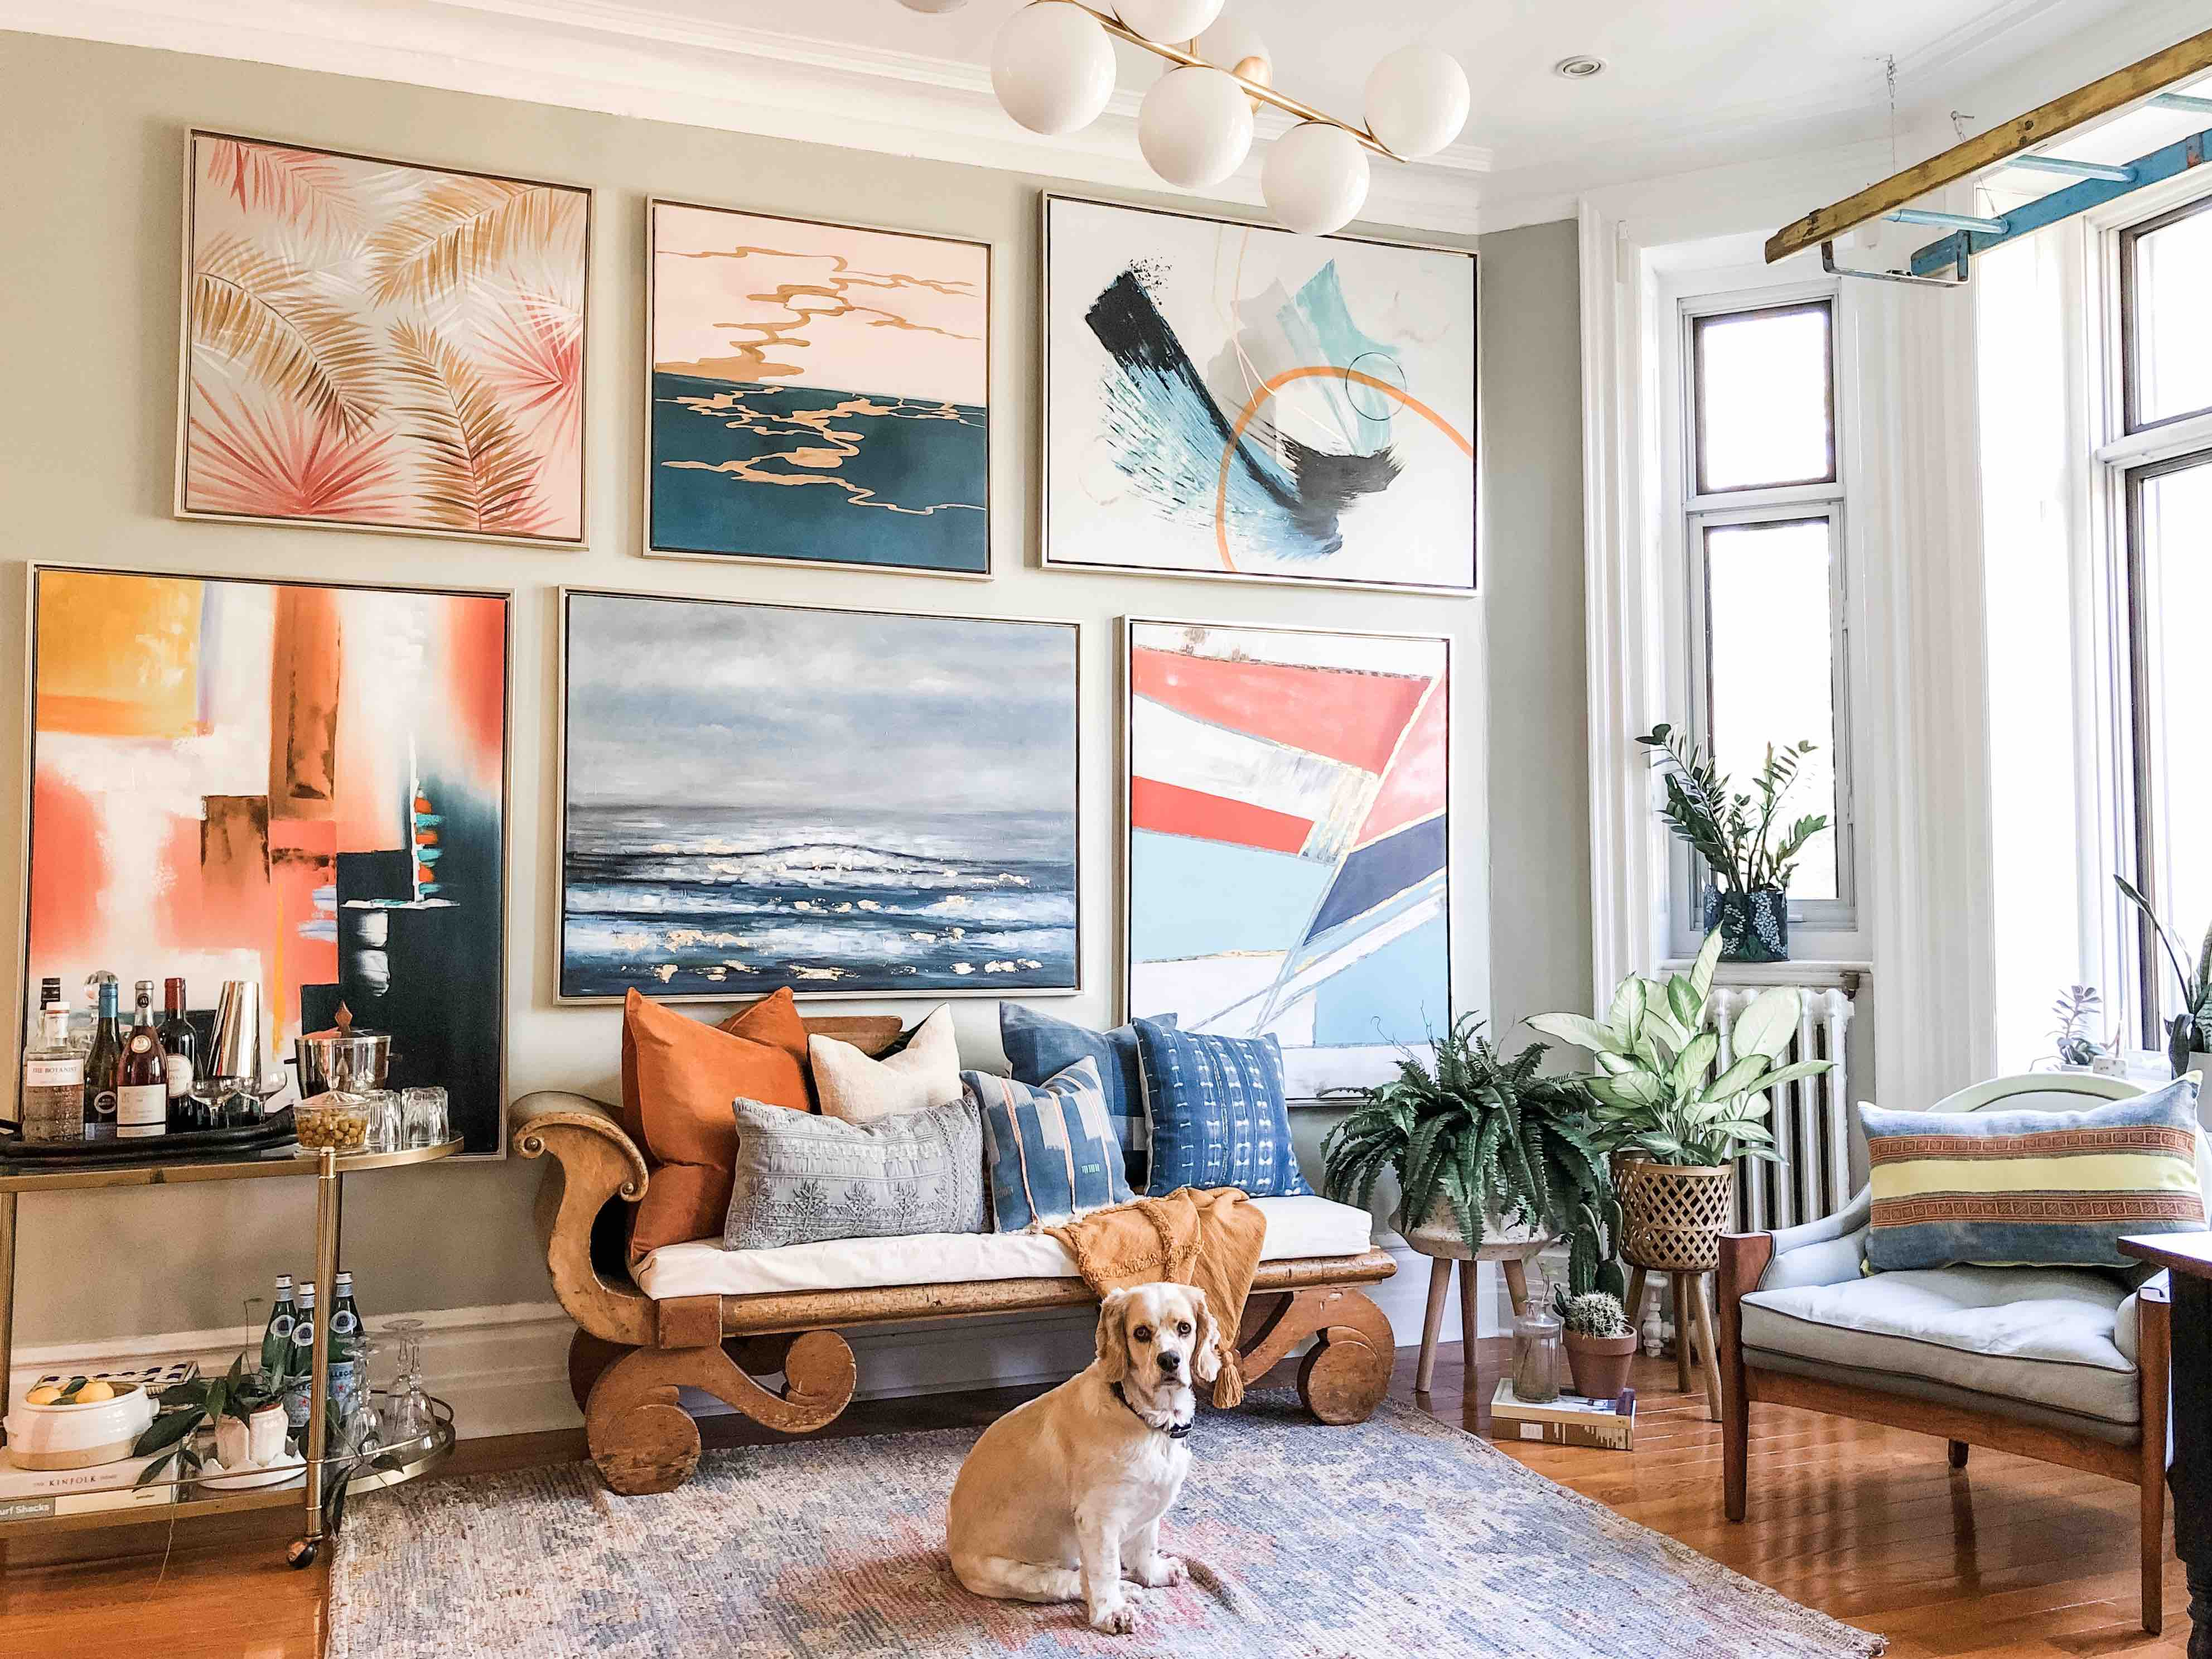 6 Ways To Nail Your Gallery Wall With Oversized Art